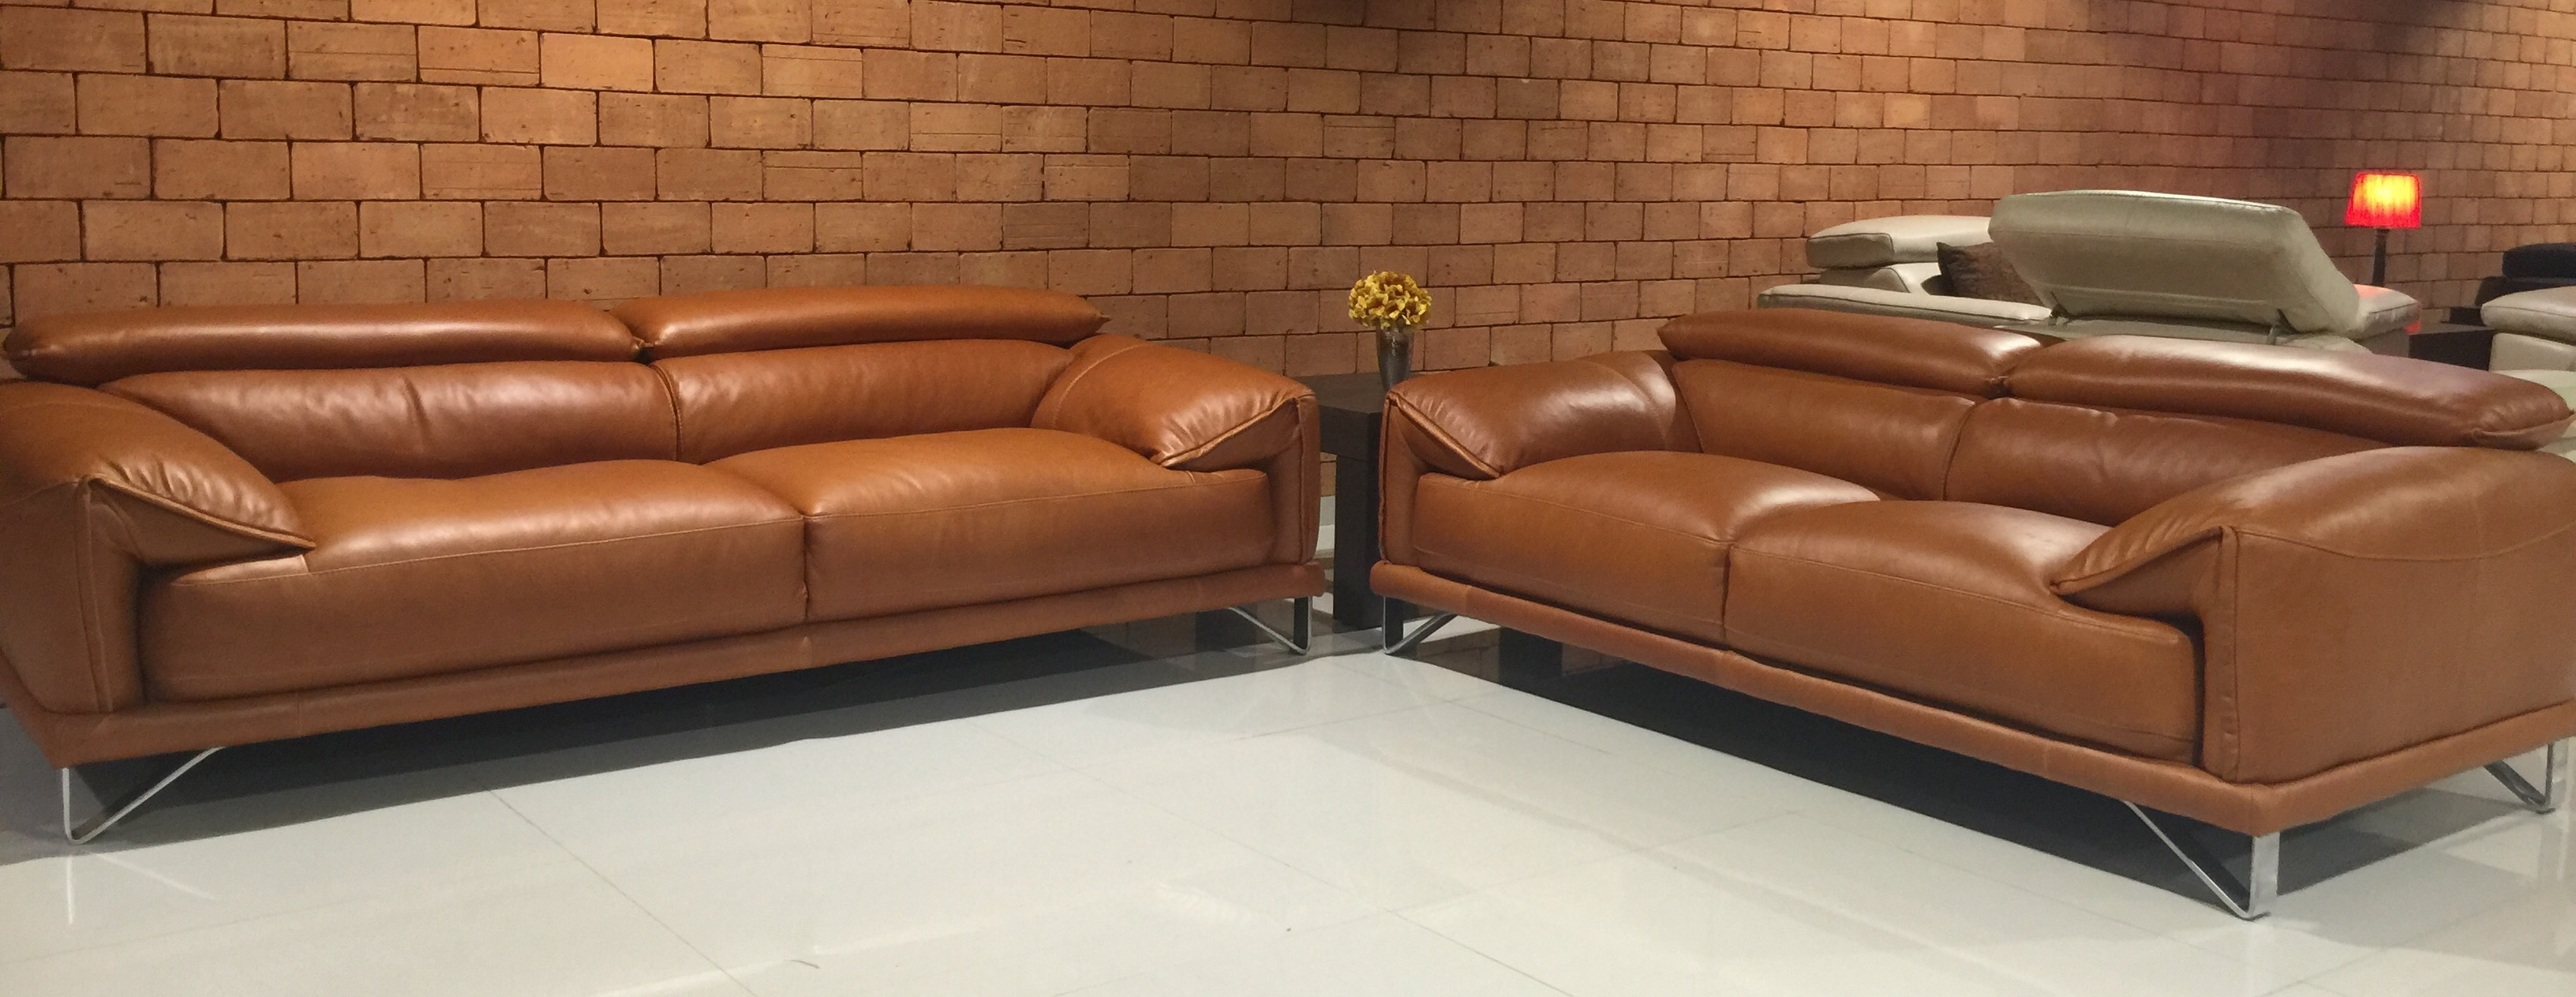 Venezuela Leather Sofa